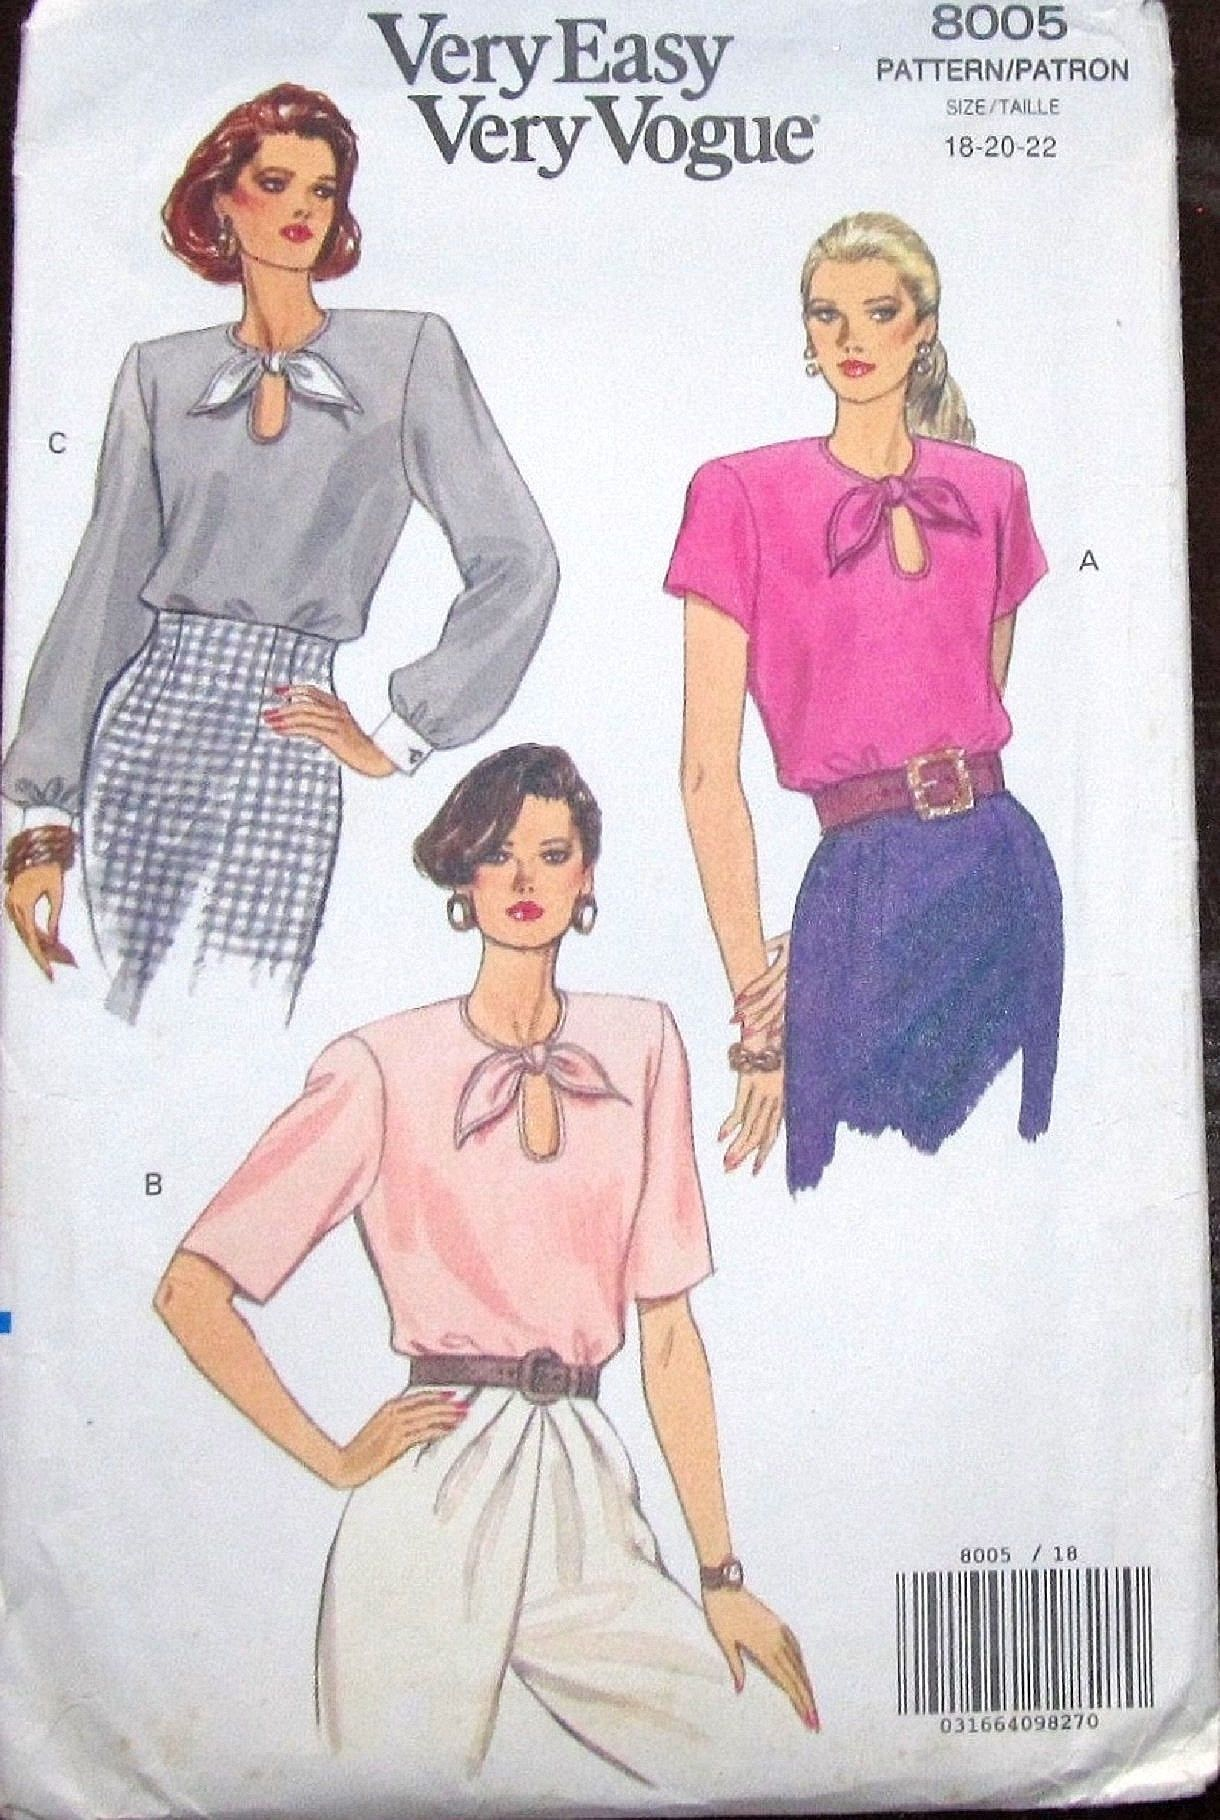 Vintage very easy vogue sewing pattern 8005 pullover tie neckline vintage very easy vogue sewing pattern 8005 pullover tie neckline blouse top womens misses ccuart Image collections